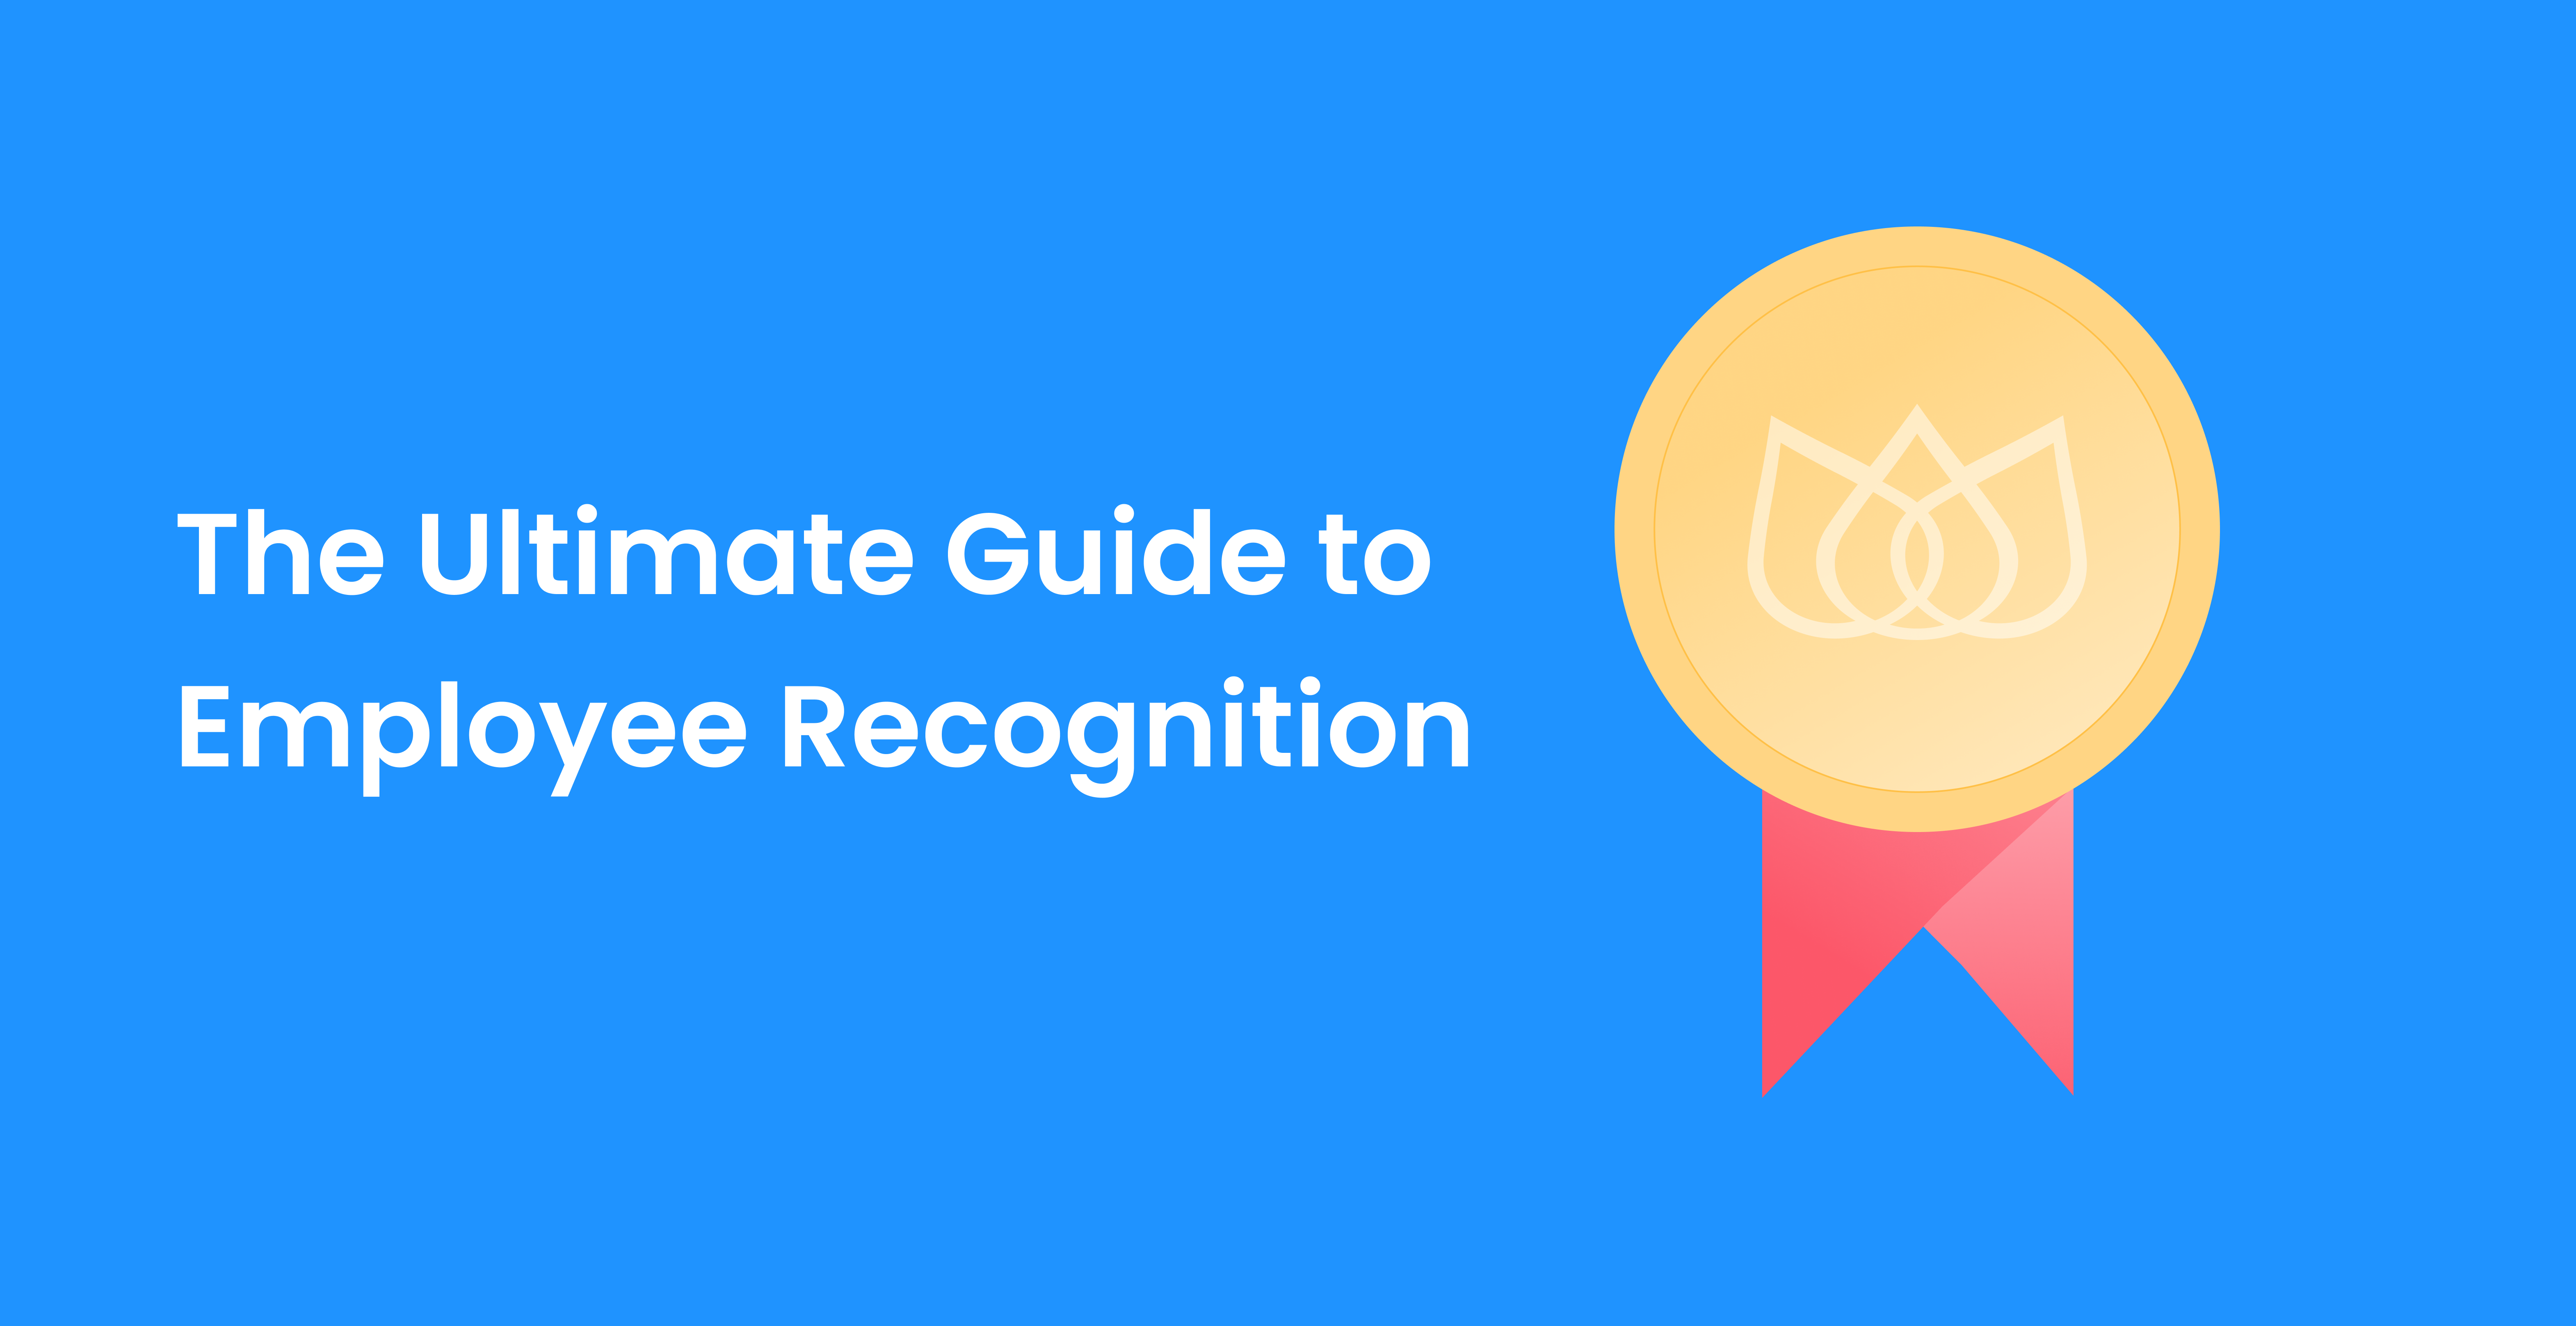 Employee Recognition: The Ultimate Guide